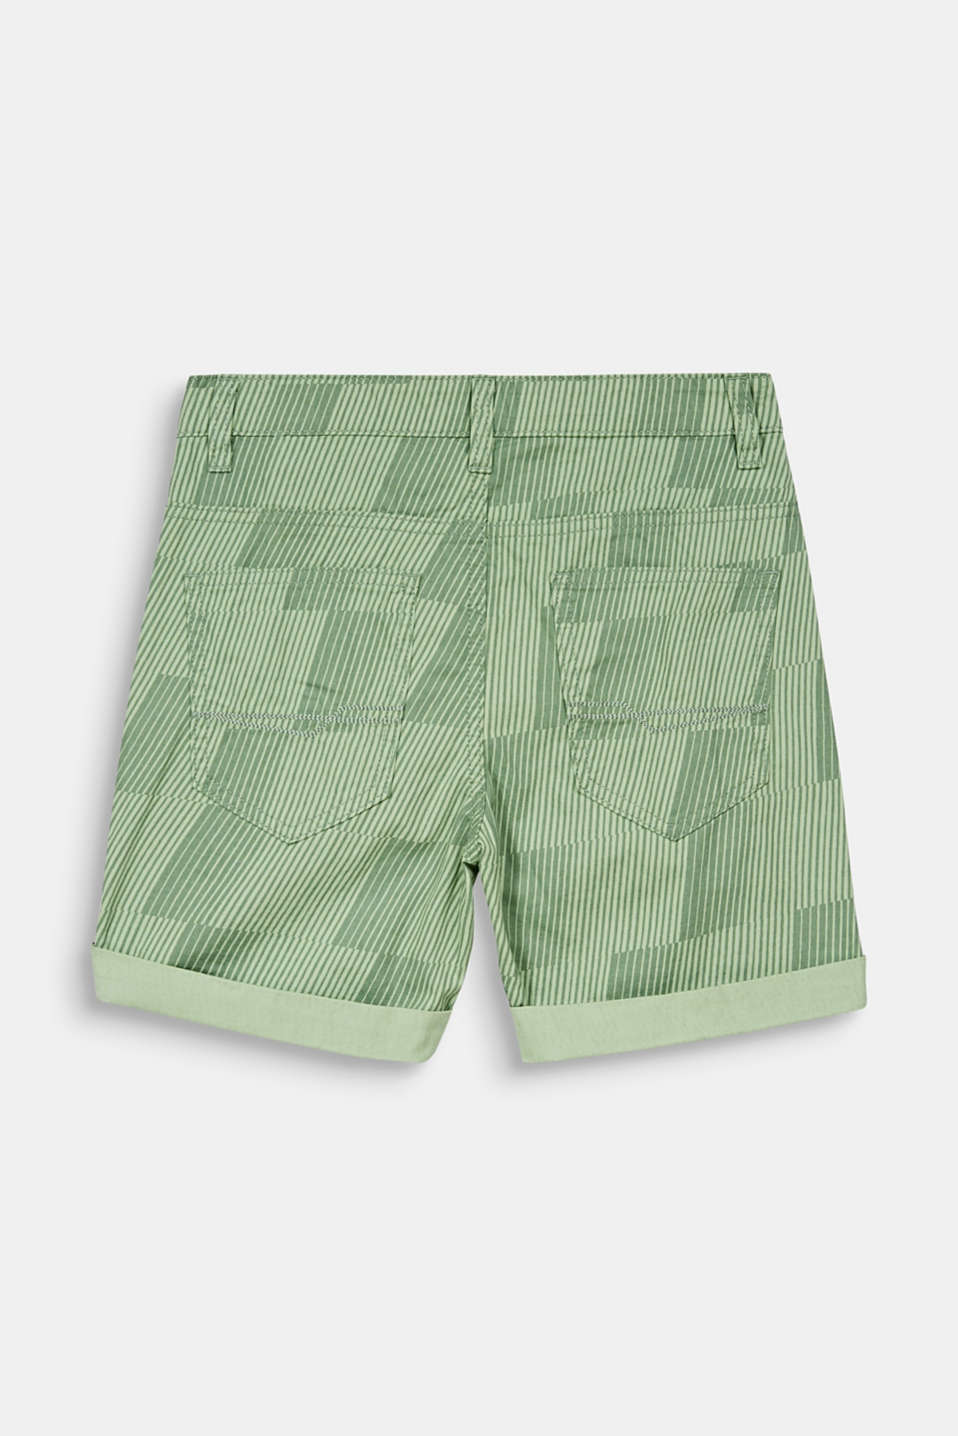 Shorts with a geometric print, 100% cotton, LCPASTEL GREEN, detail image number 1